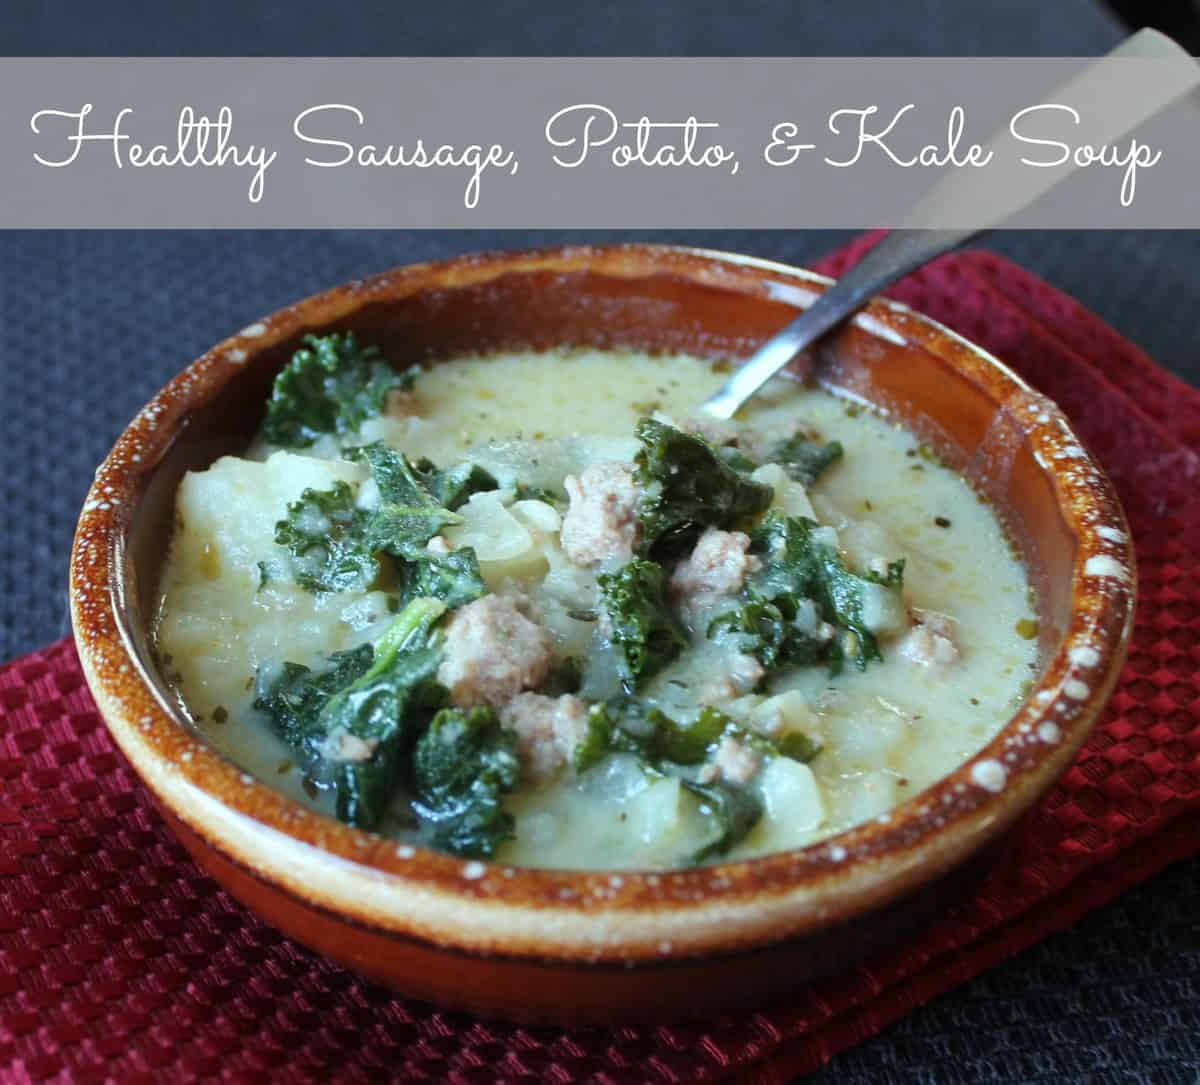 Copycat zuppa toscana for Olive garden potato sausage kale soup recipe